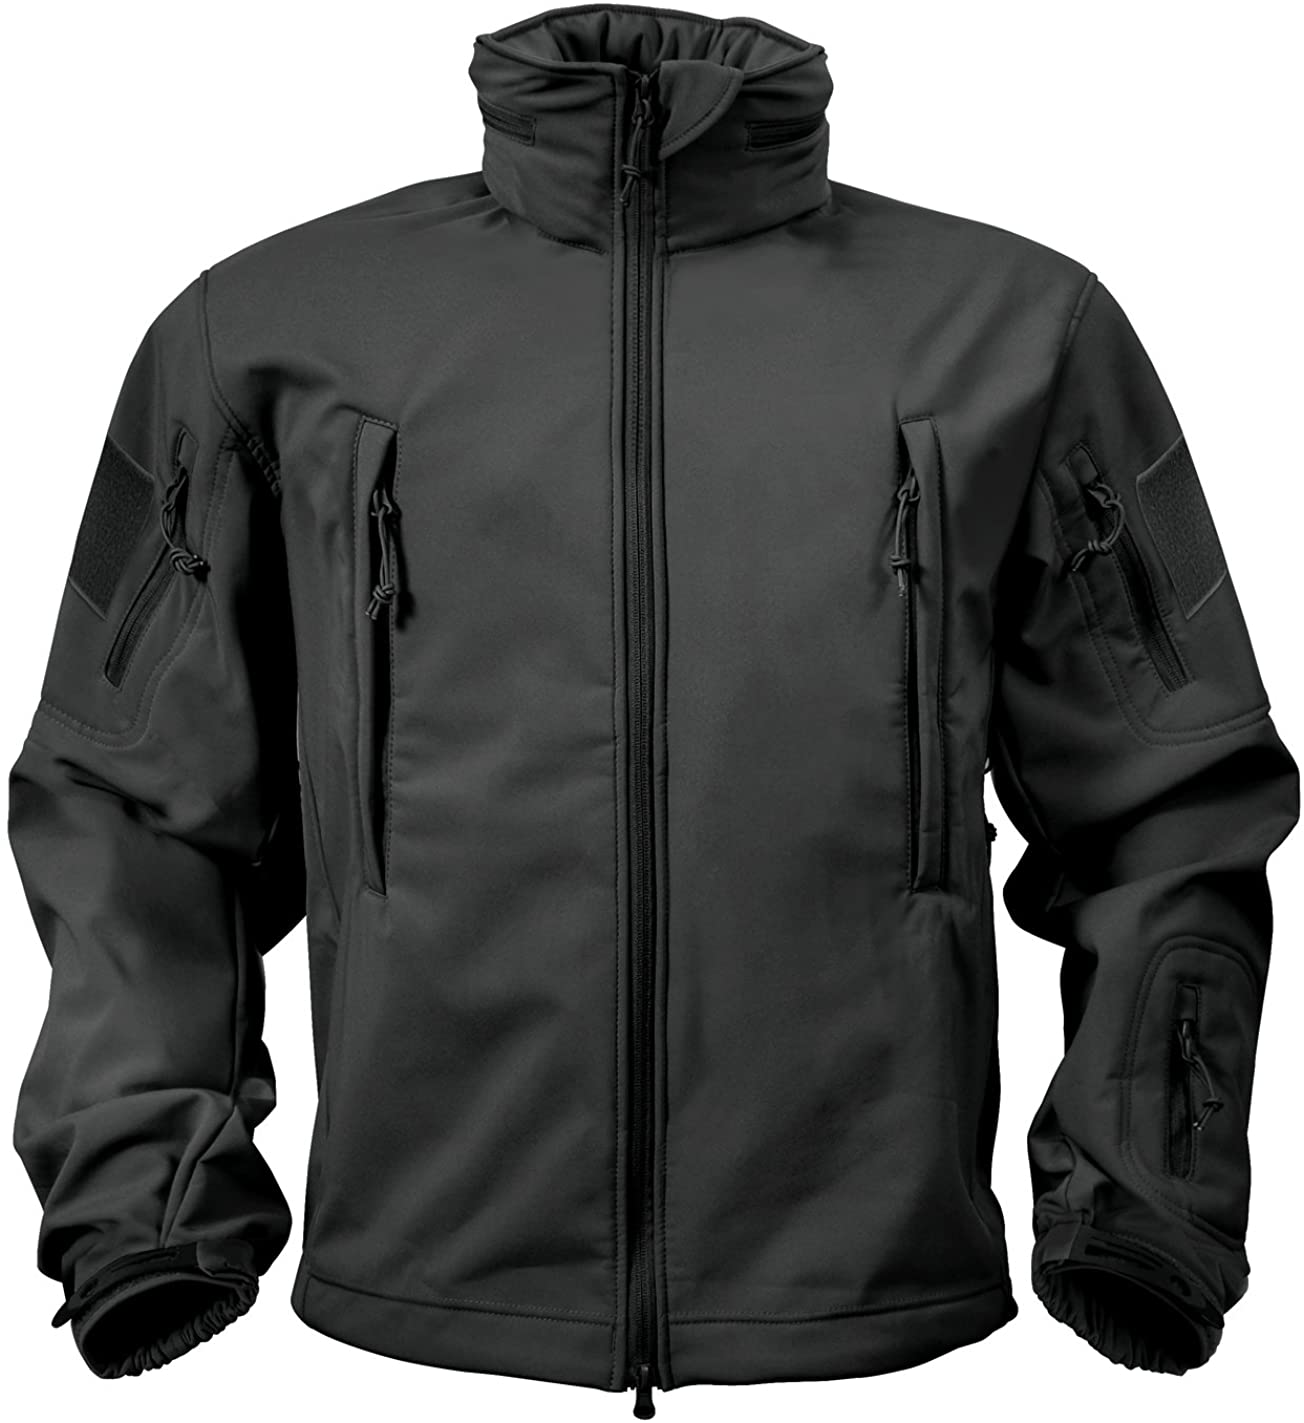 Rothco Special Ops Soft Shell Jacket: Clothing